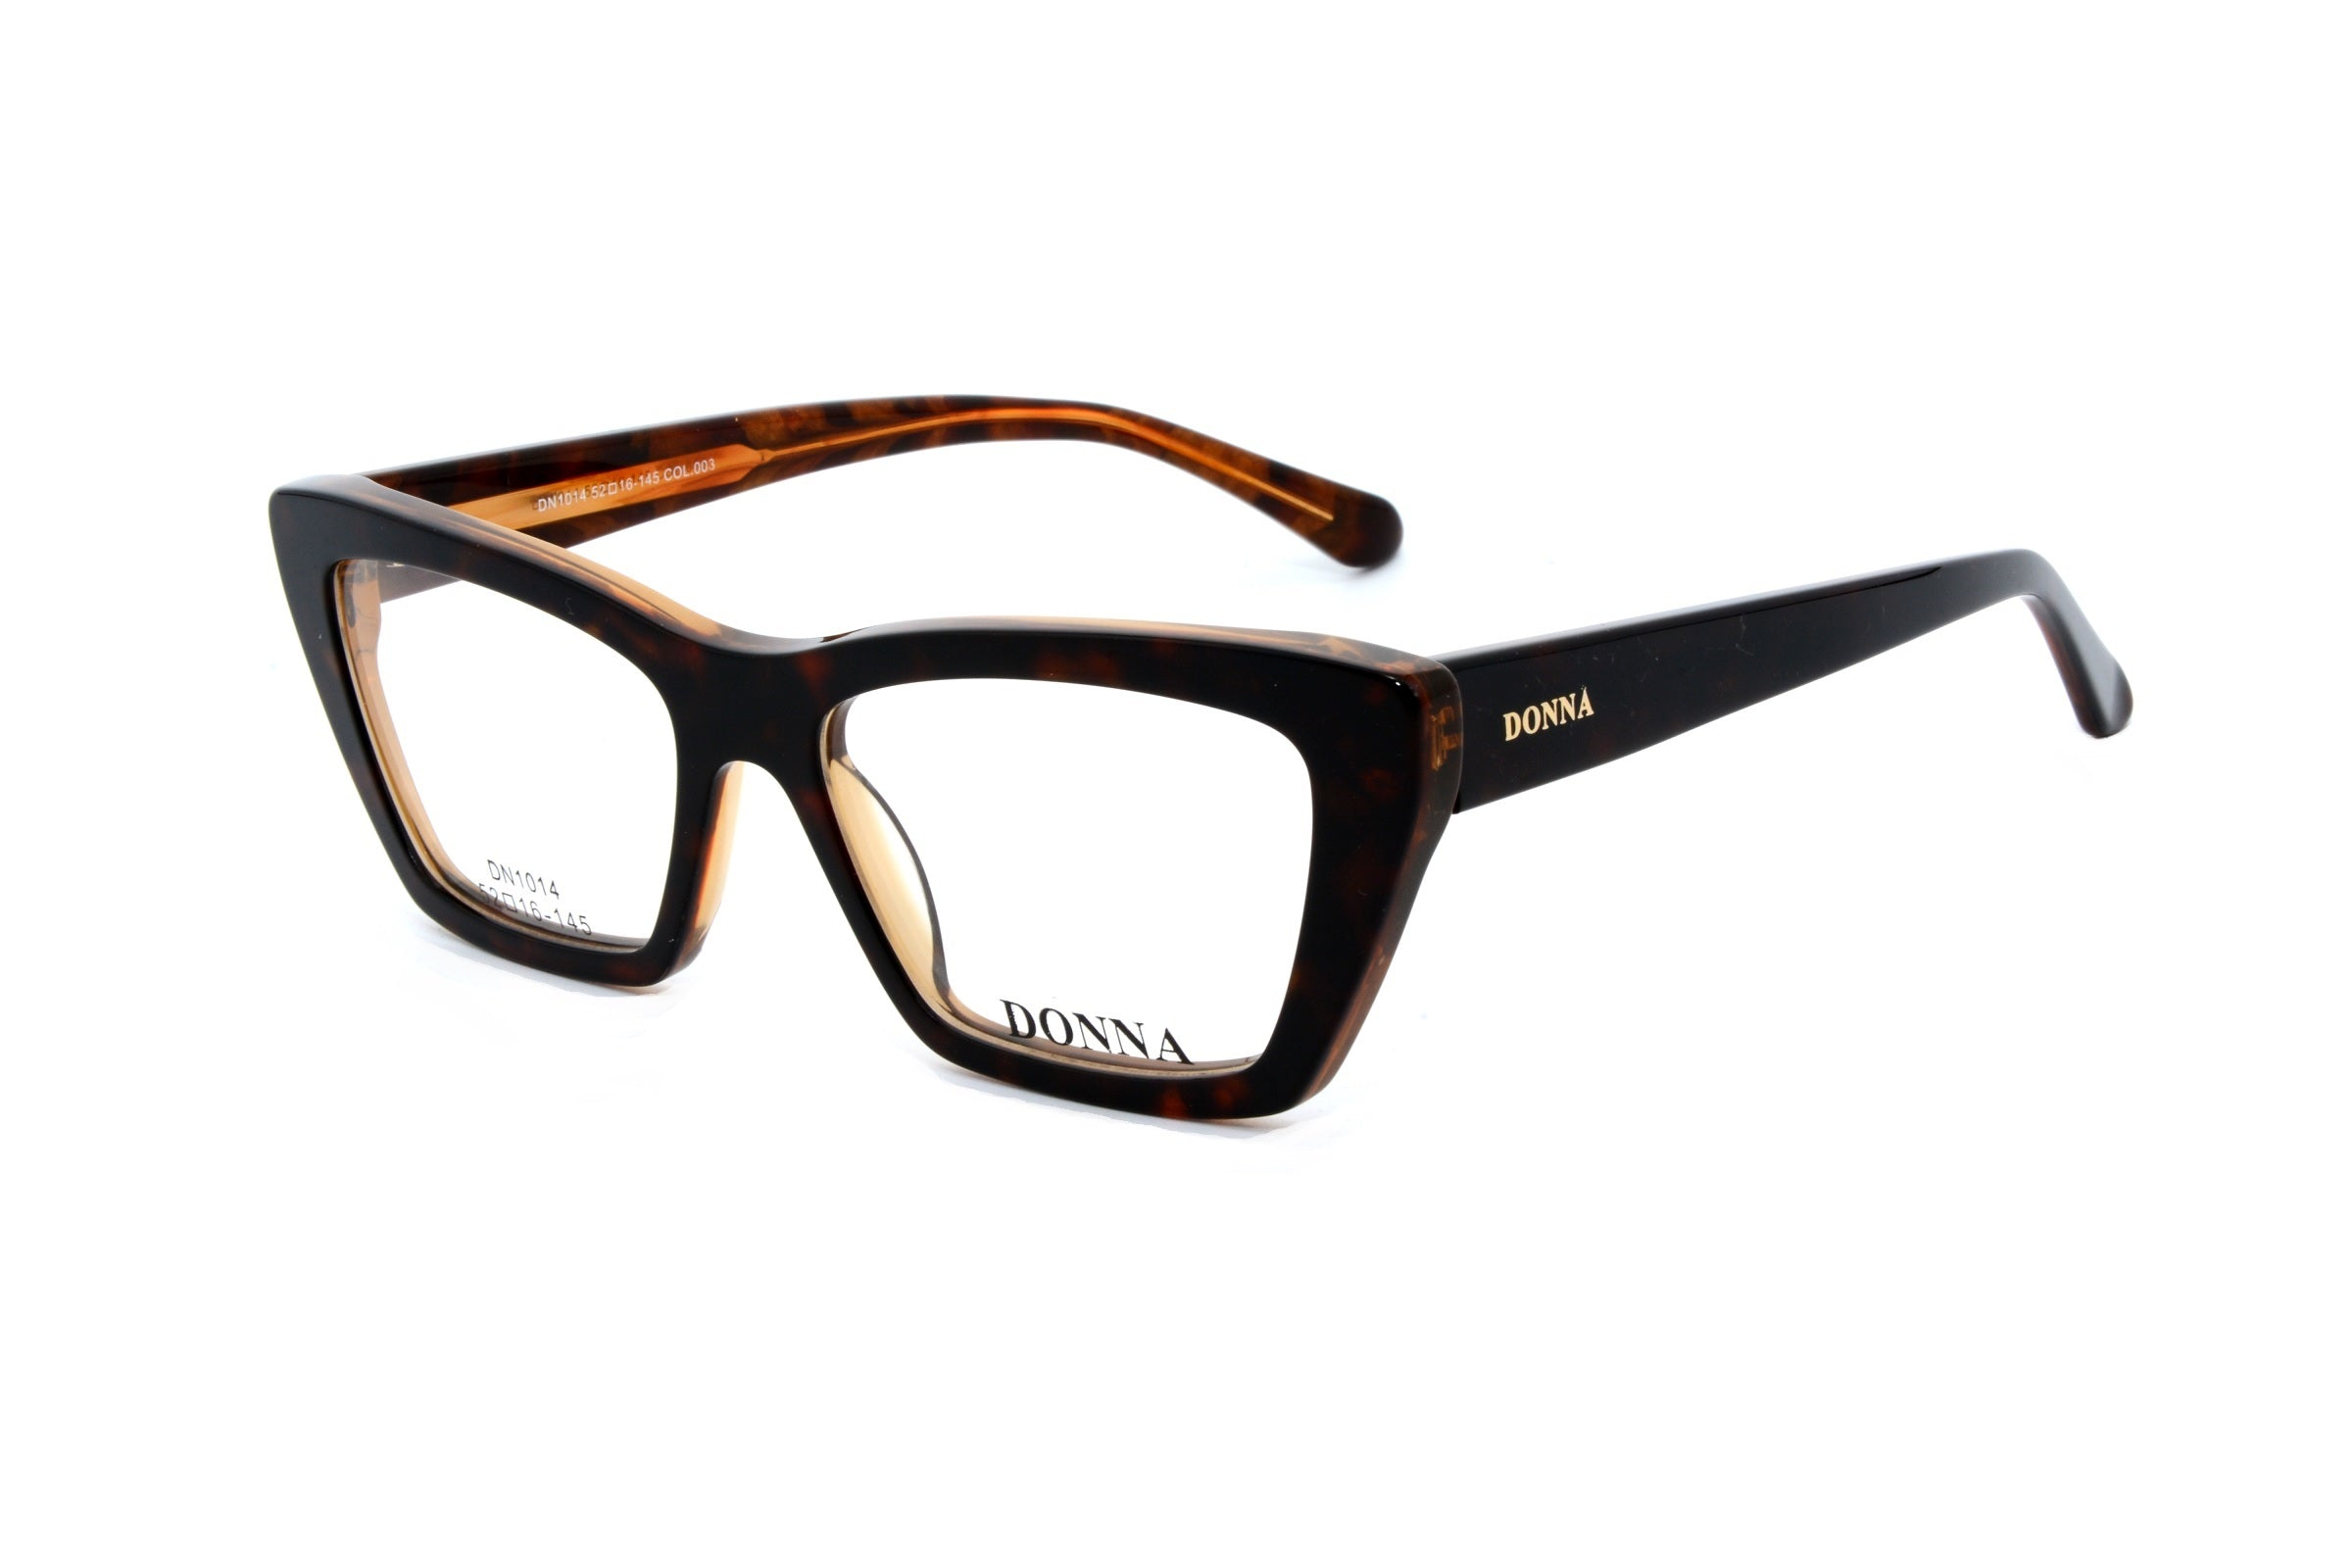 Donna eyewear 1014, C003 - Optics Trading